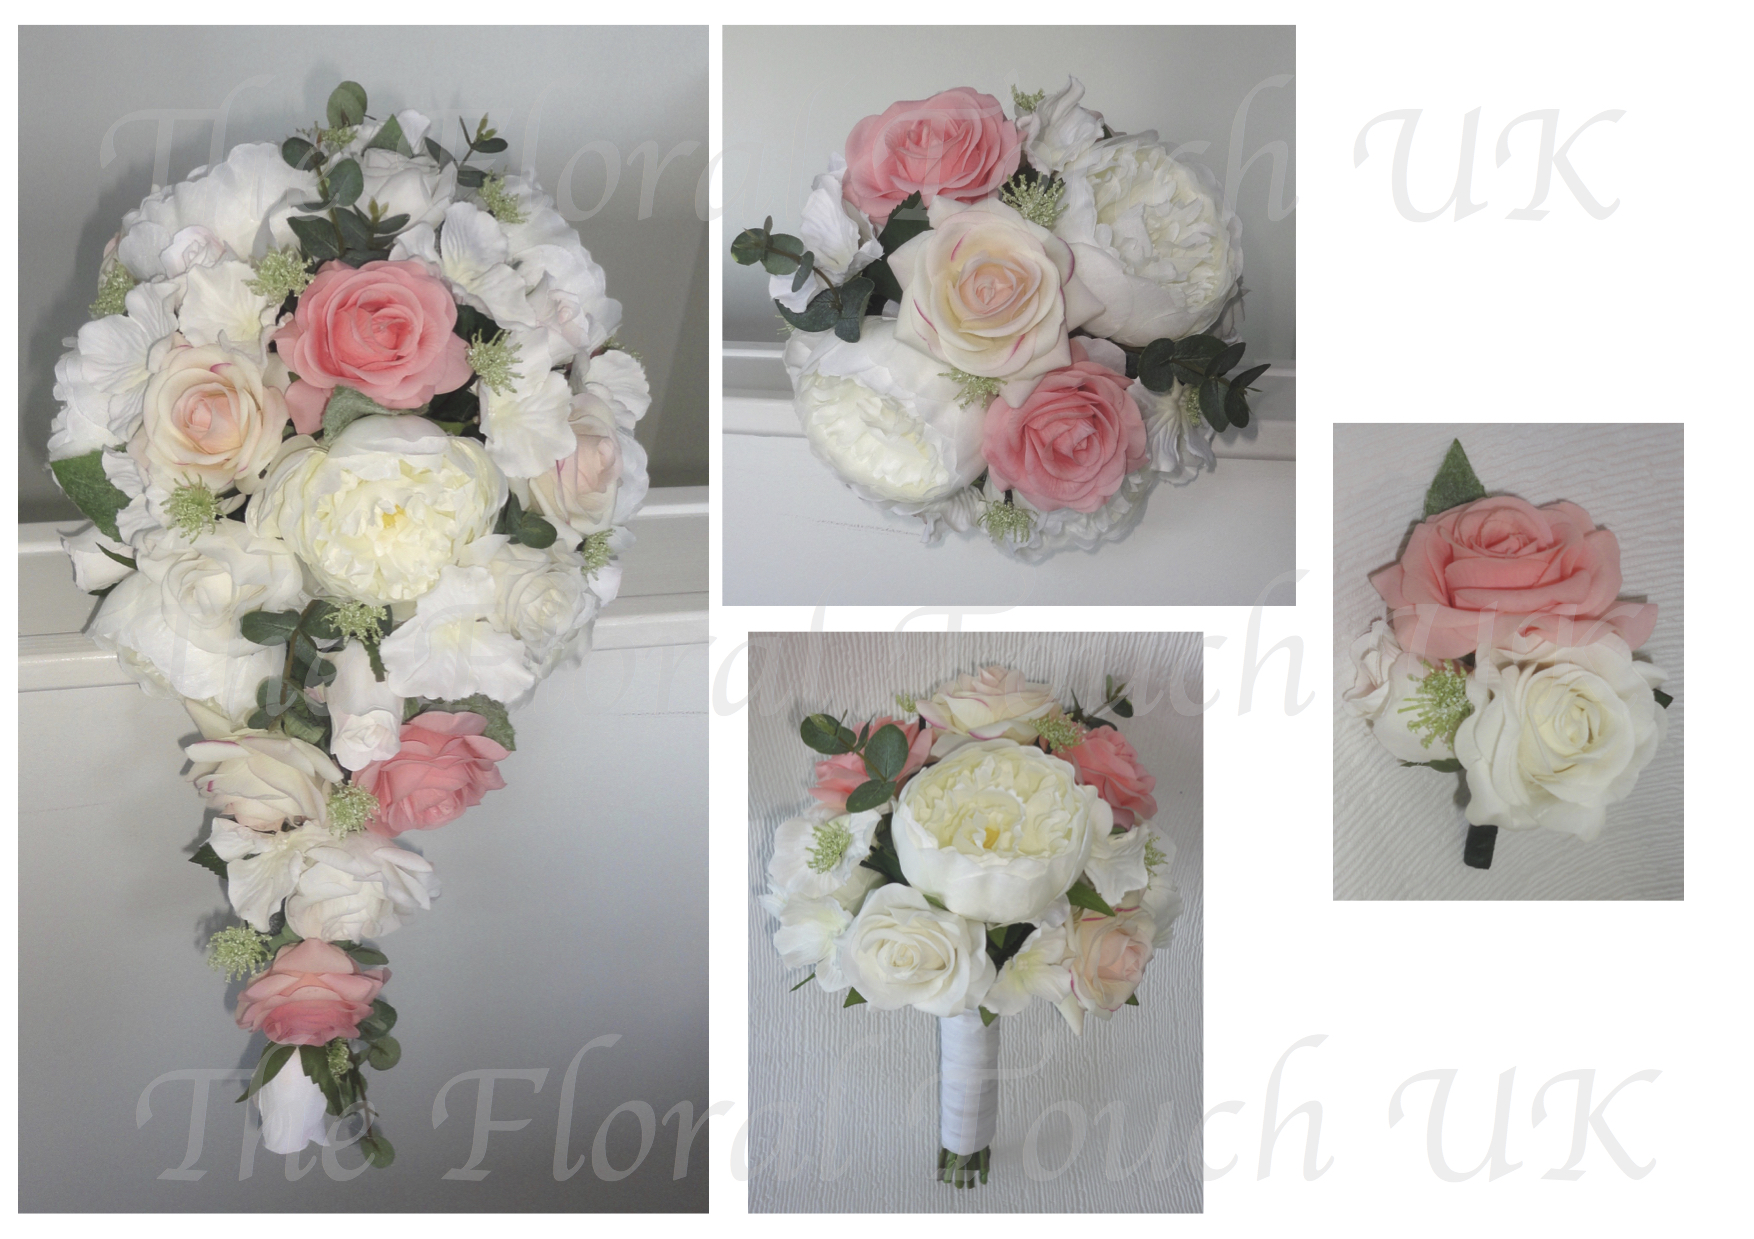 Bouquet Of Flowers For Bridal Shower - Flowers Healthy